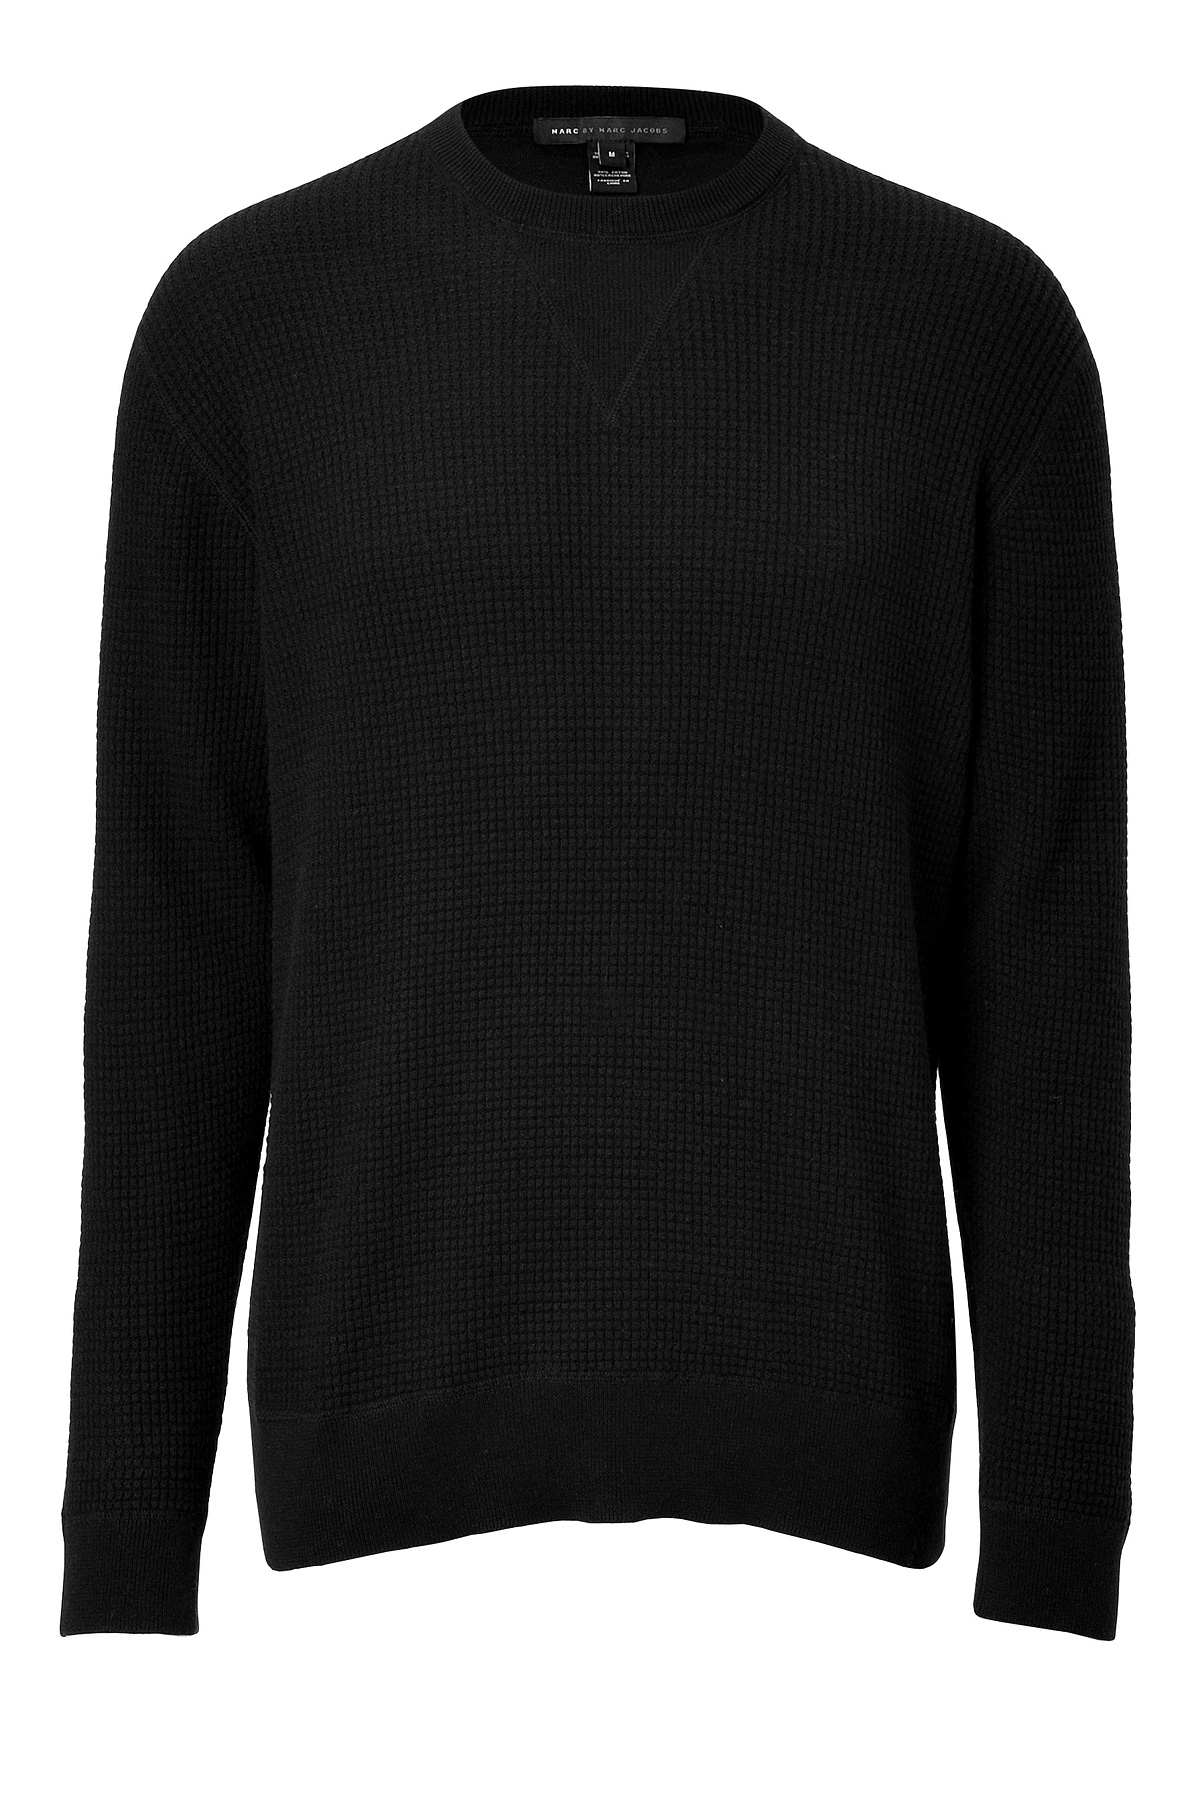 marc by marc jacobs wool fleece annarbor pullover in black in black for men lyst. Black Bedroom Furniture Sets. Home Design Ideas